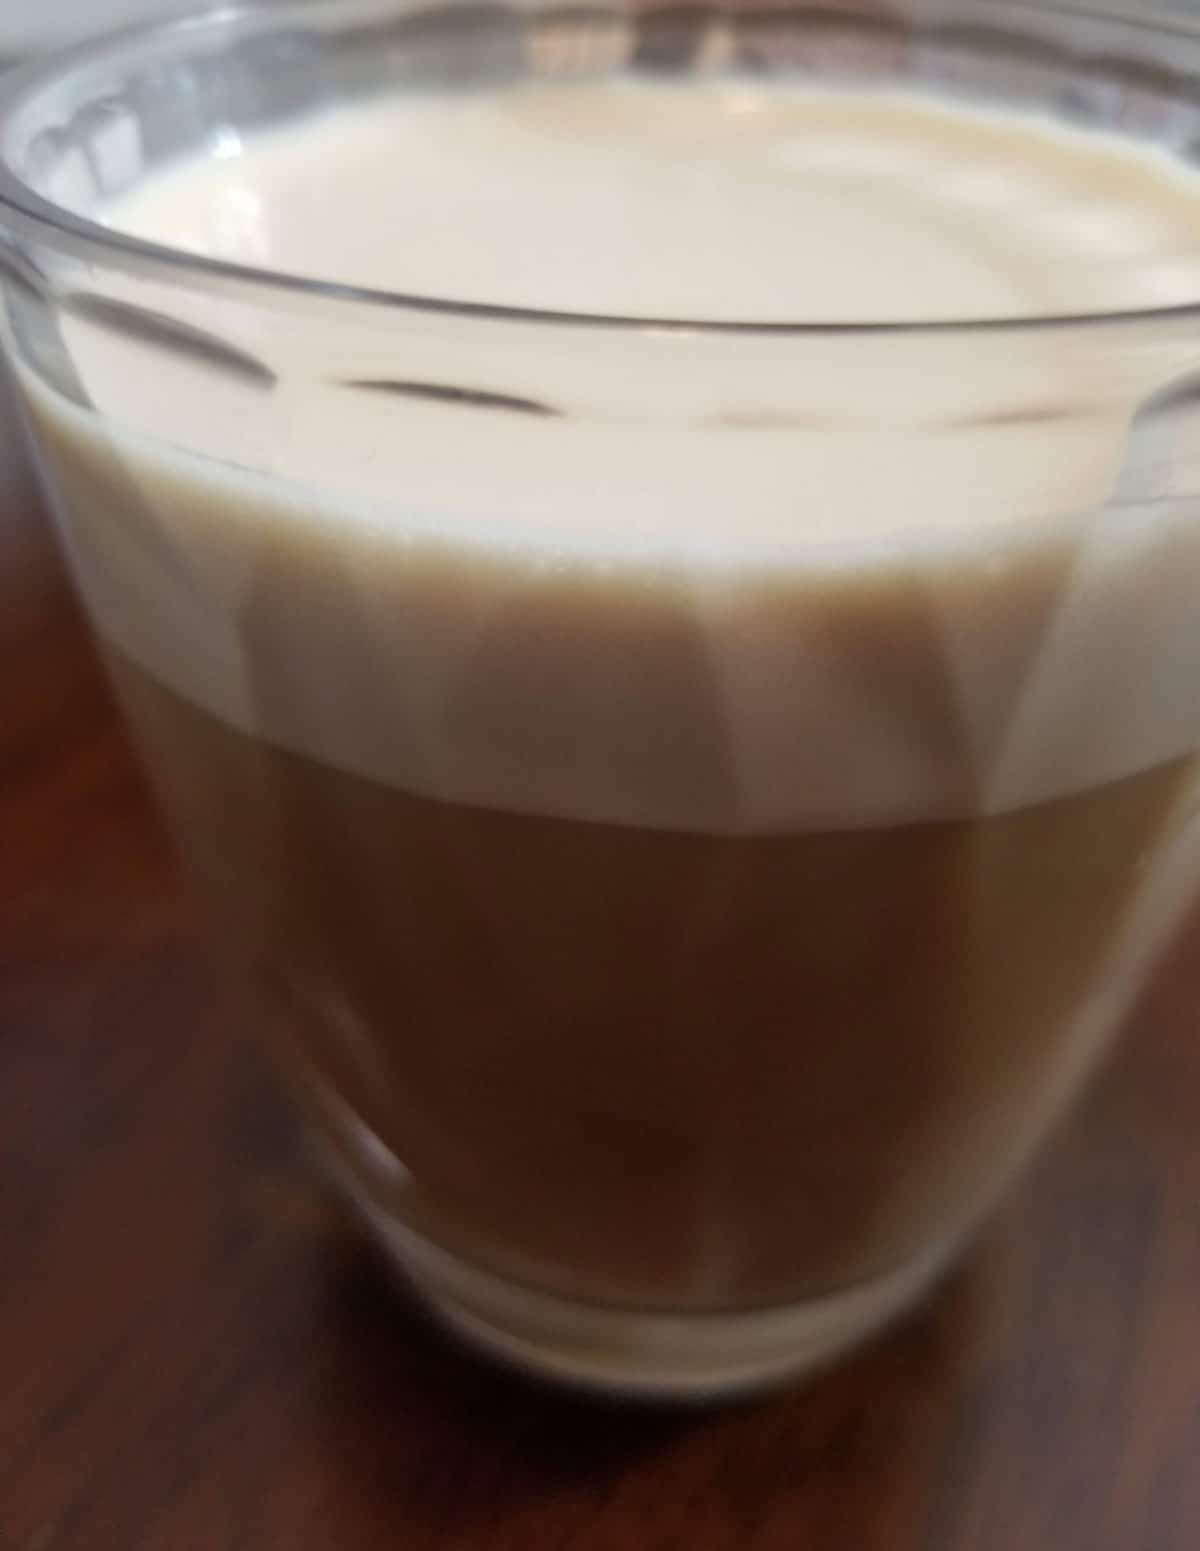 instant cold coffee with milk